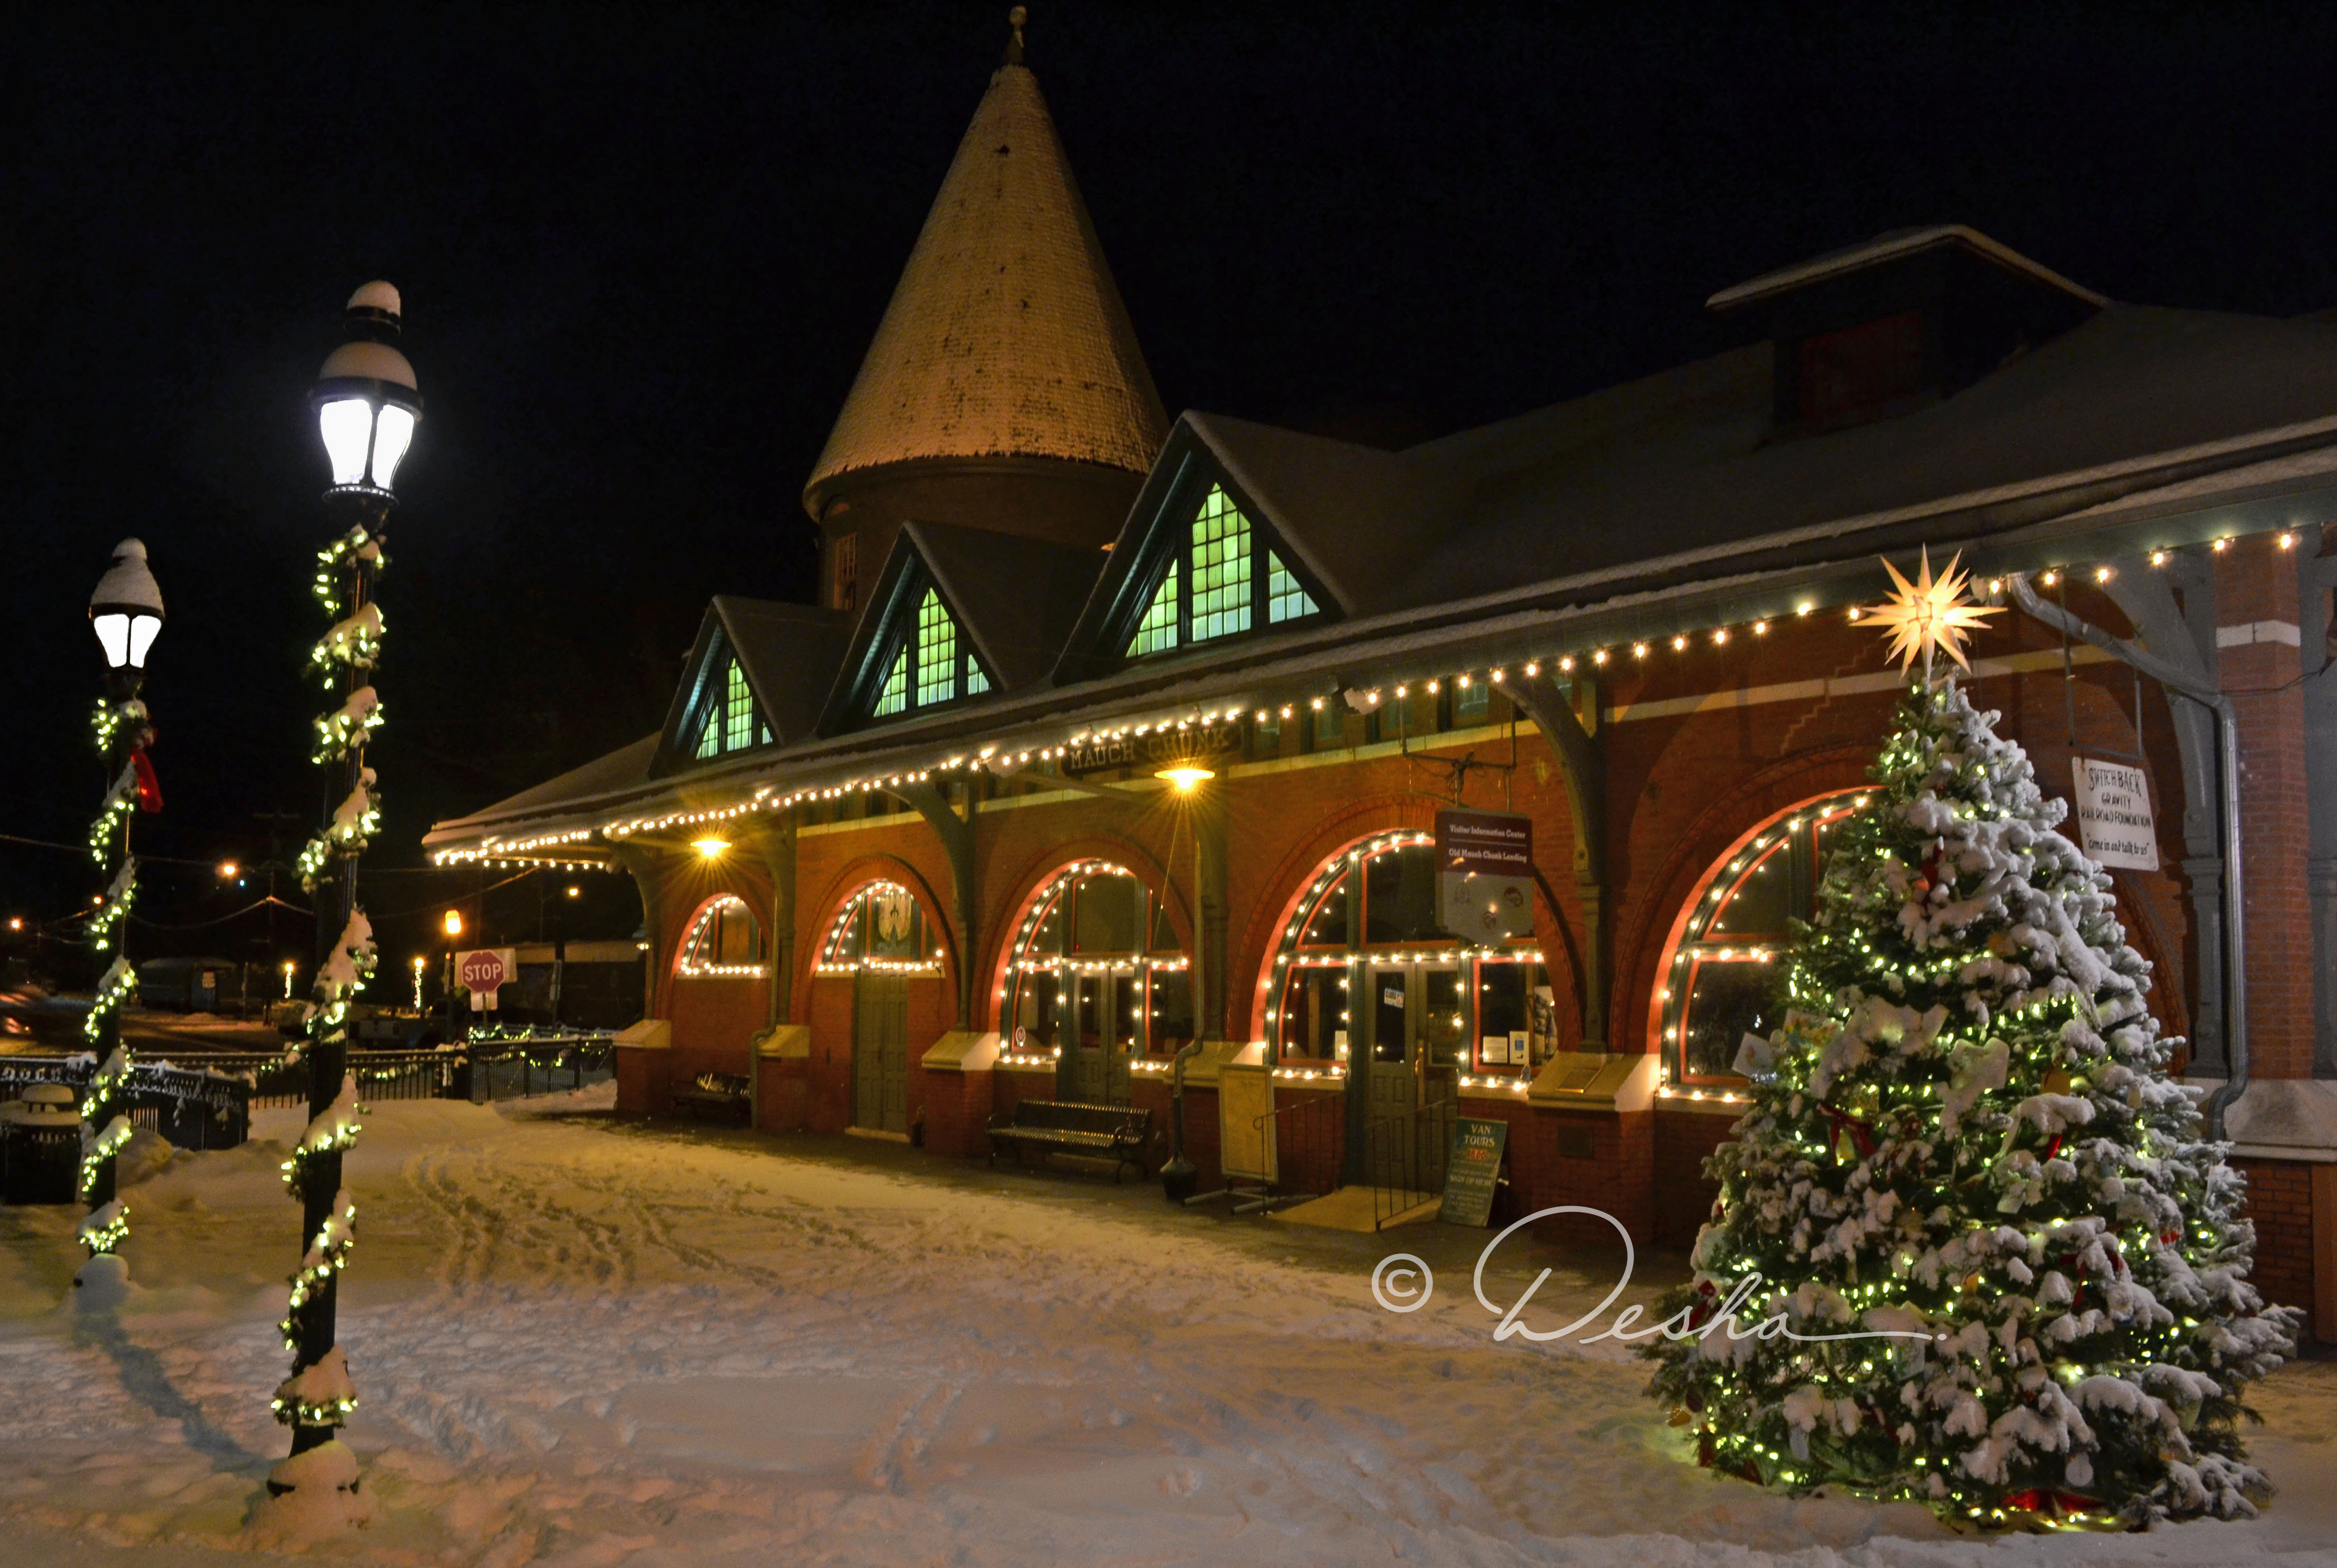 Train Station at Christmastime